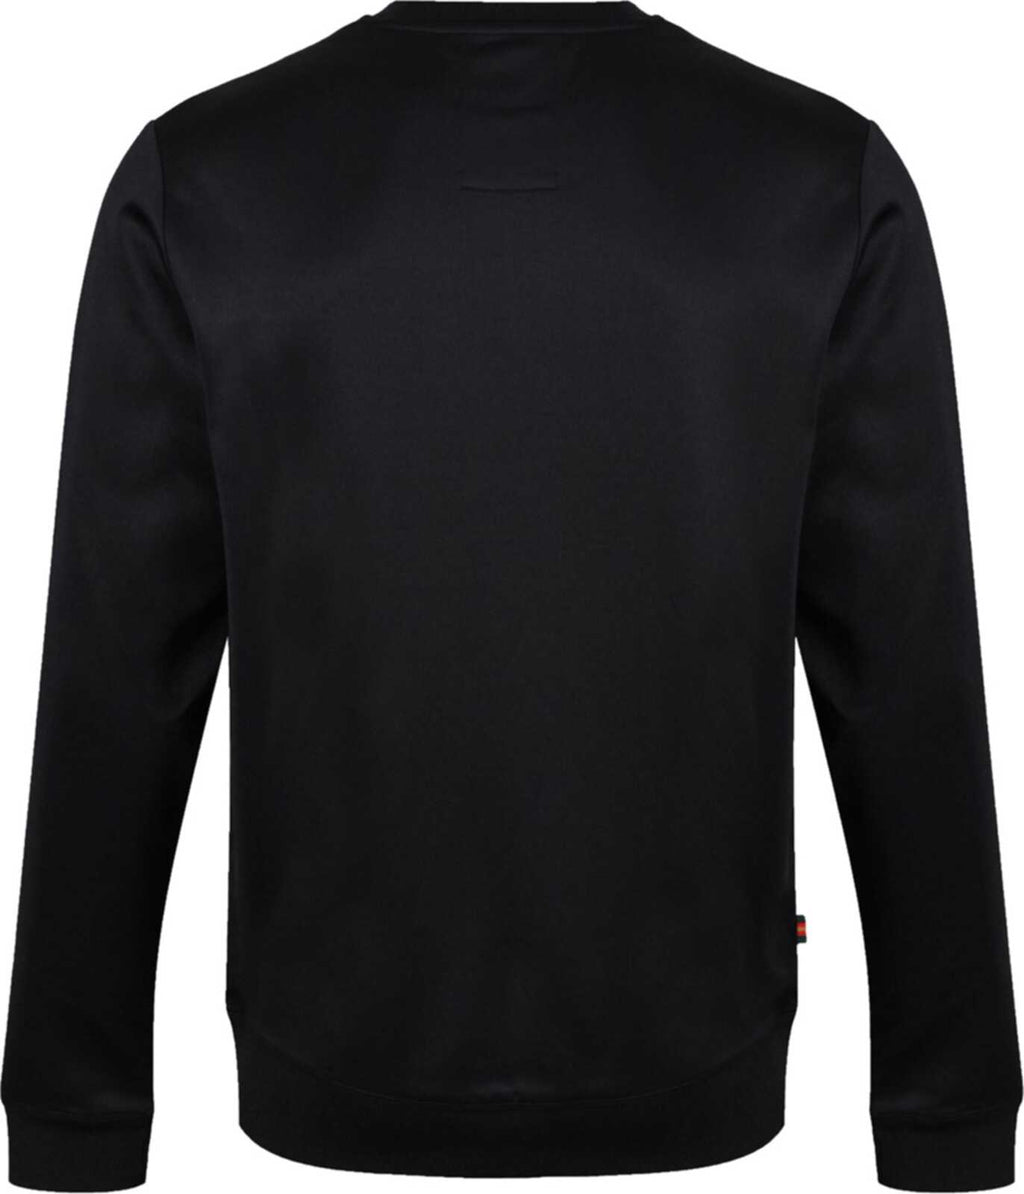 Luke 1977 Phyco Pierce Sweatshirt Black